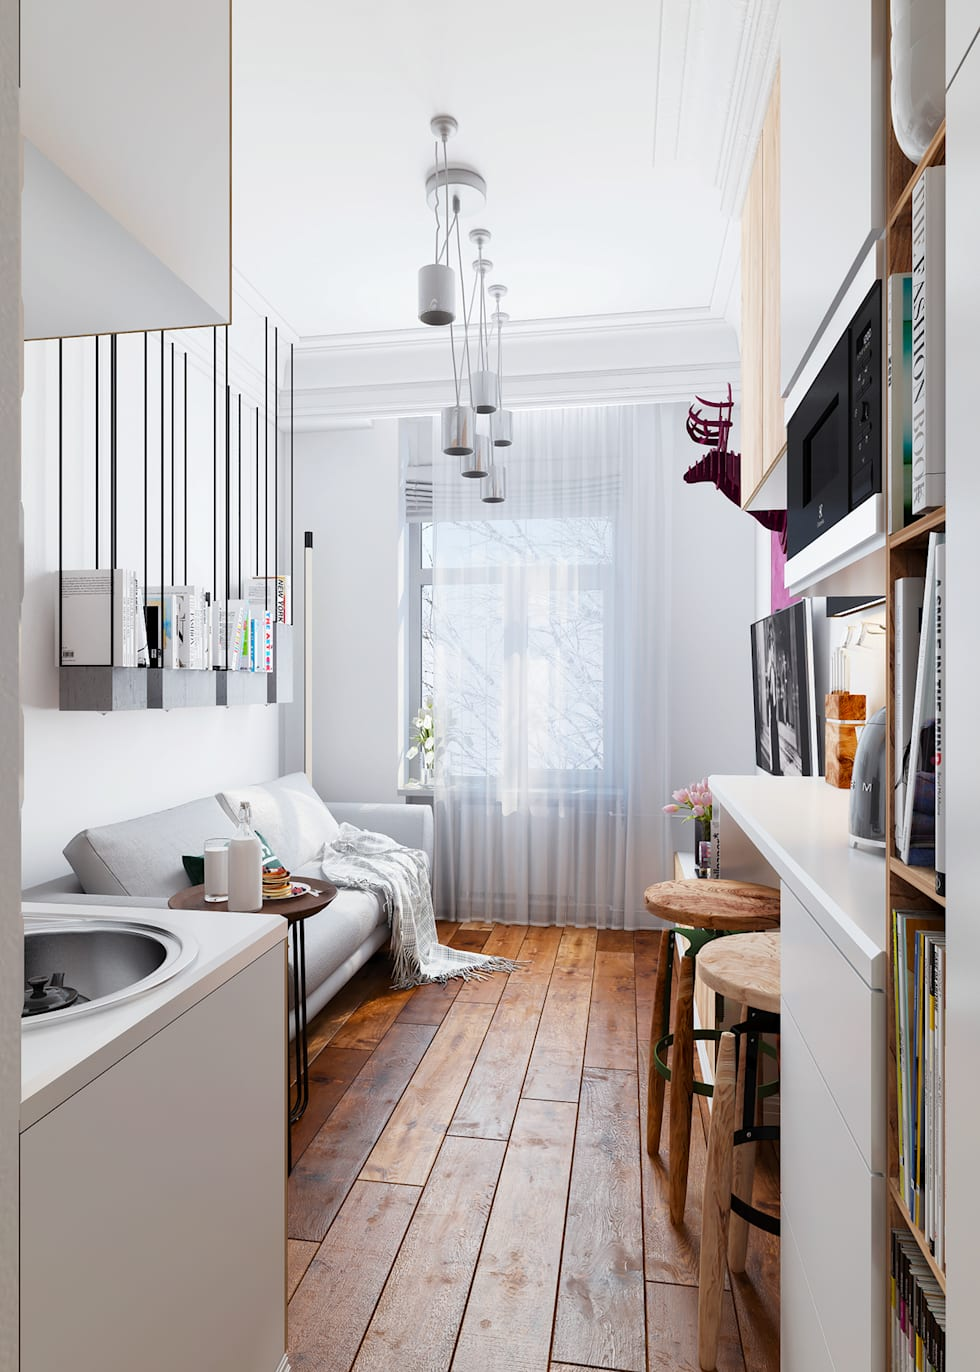 The tiniest apartment you will ever see in your life